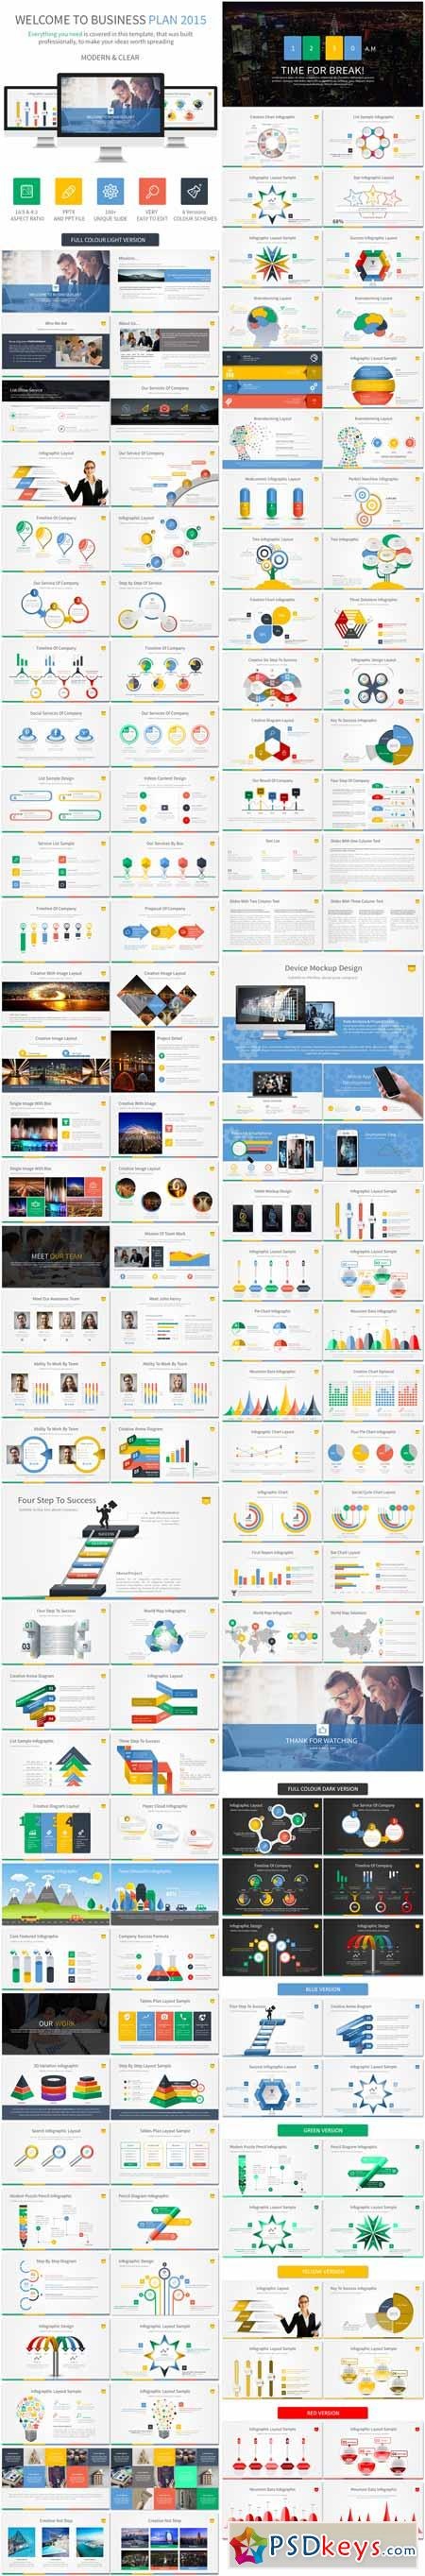 Business plan 2015 powerpoint template 11318924 free download business plan 2015 powerpoint template 11318924 toneelgroepblik Gallery